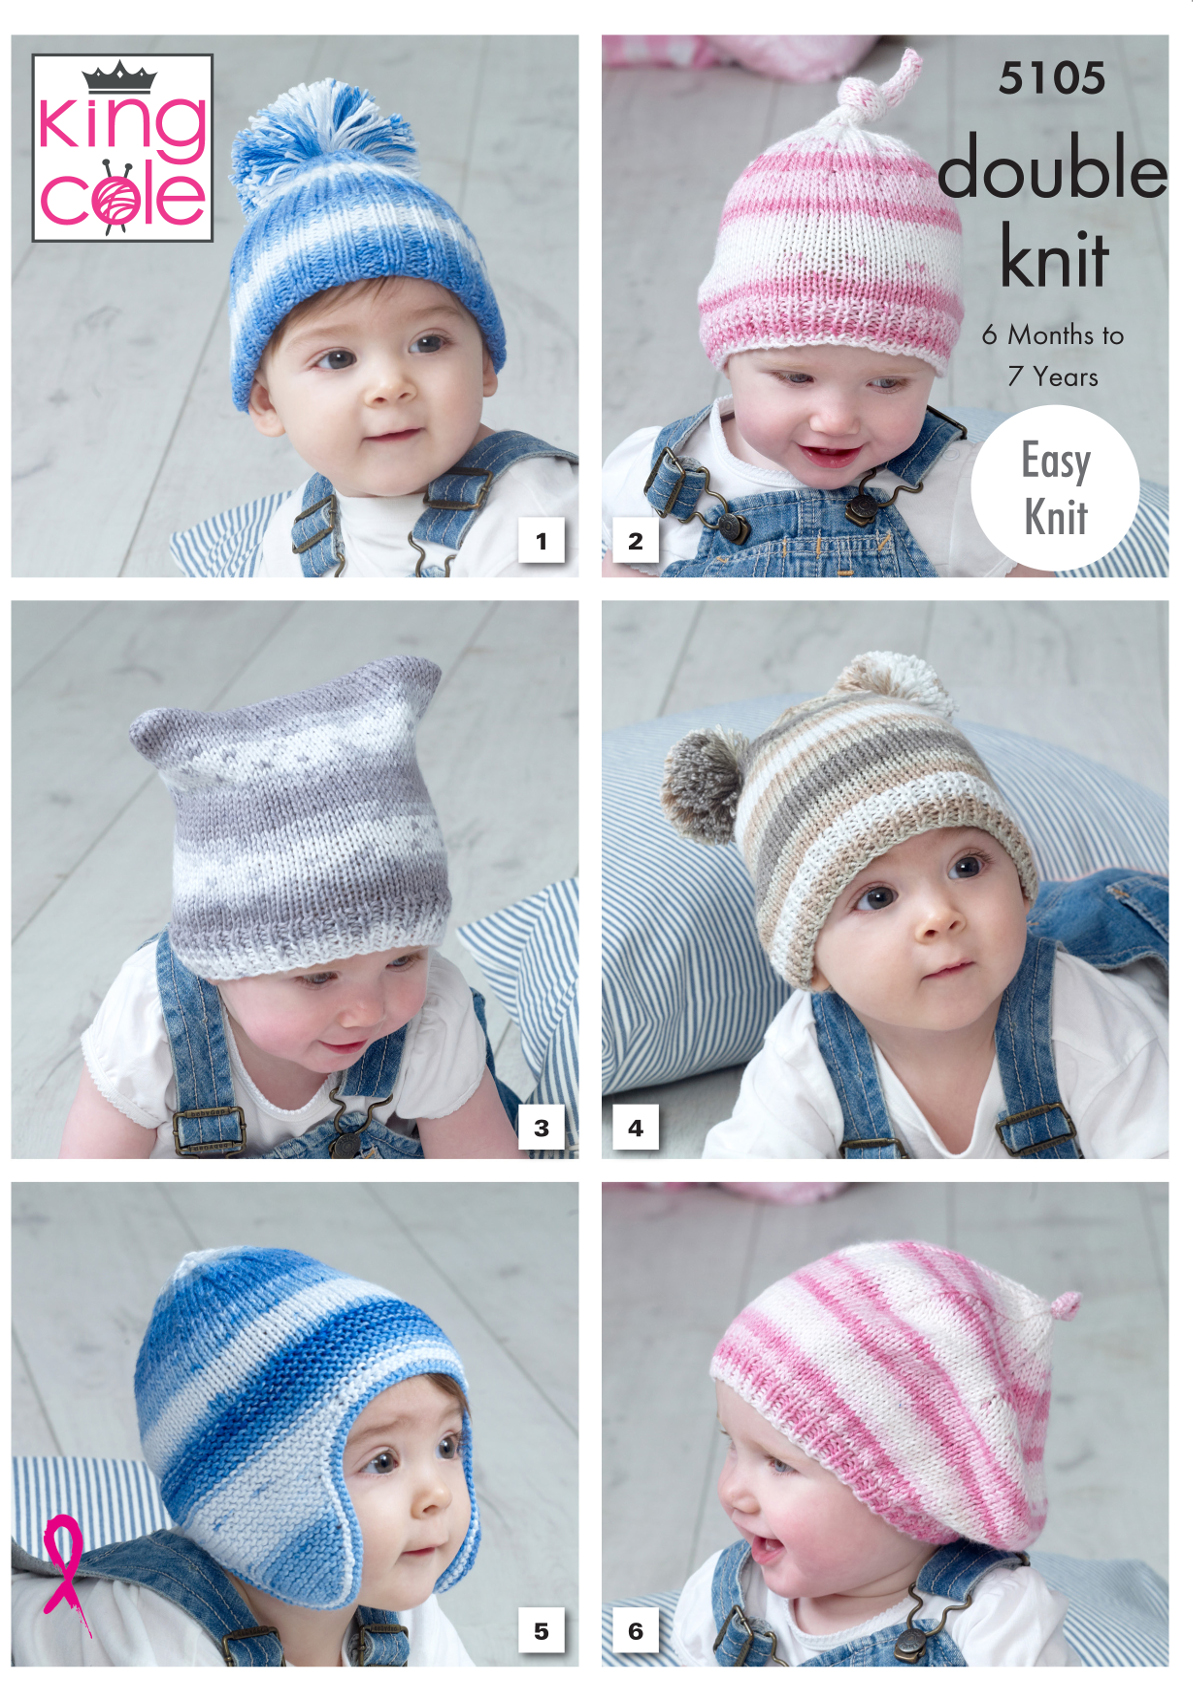 King Cole Baby Double Knitting Pattern Easy Knit Hats Helmet Beret